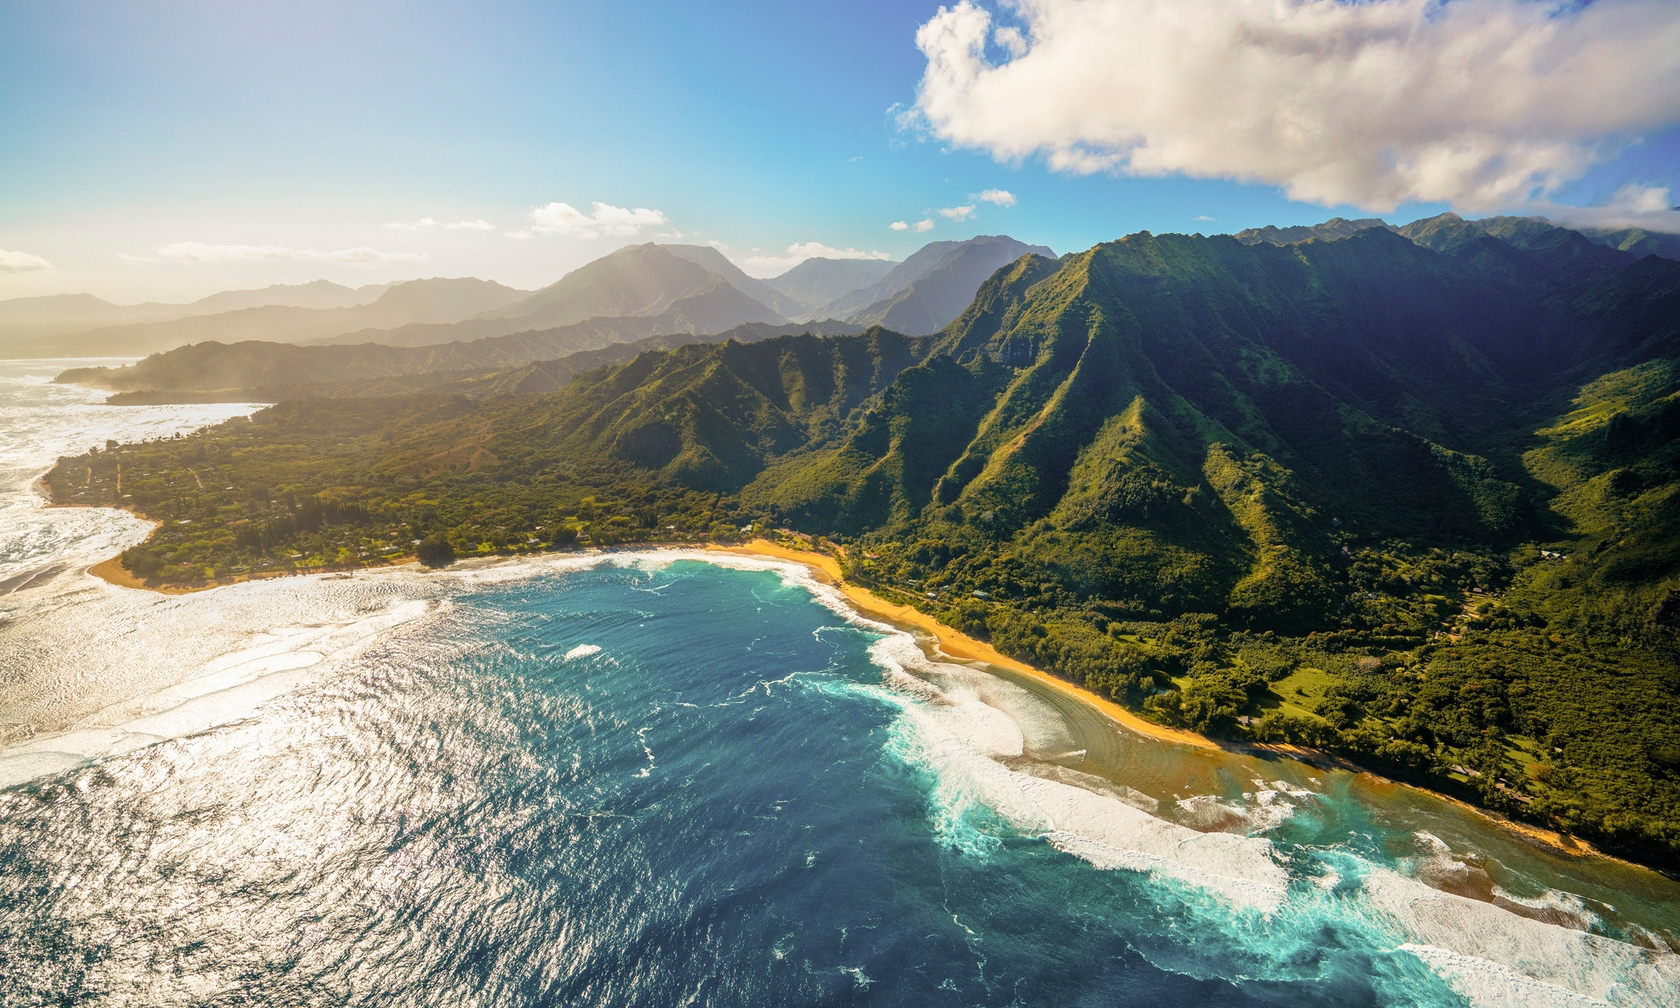 Condo and house vacation rentals in Kauai County